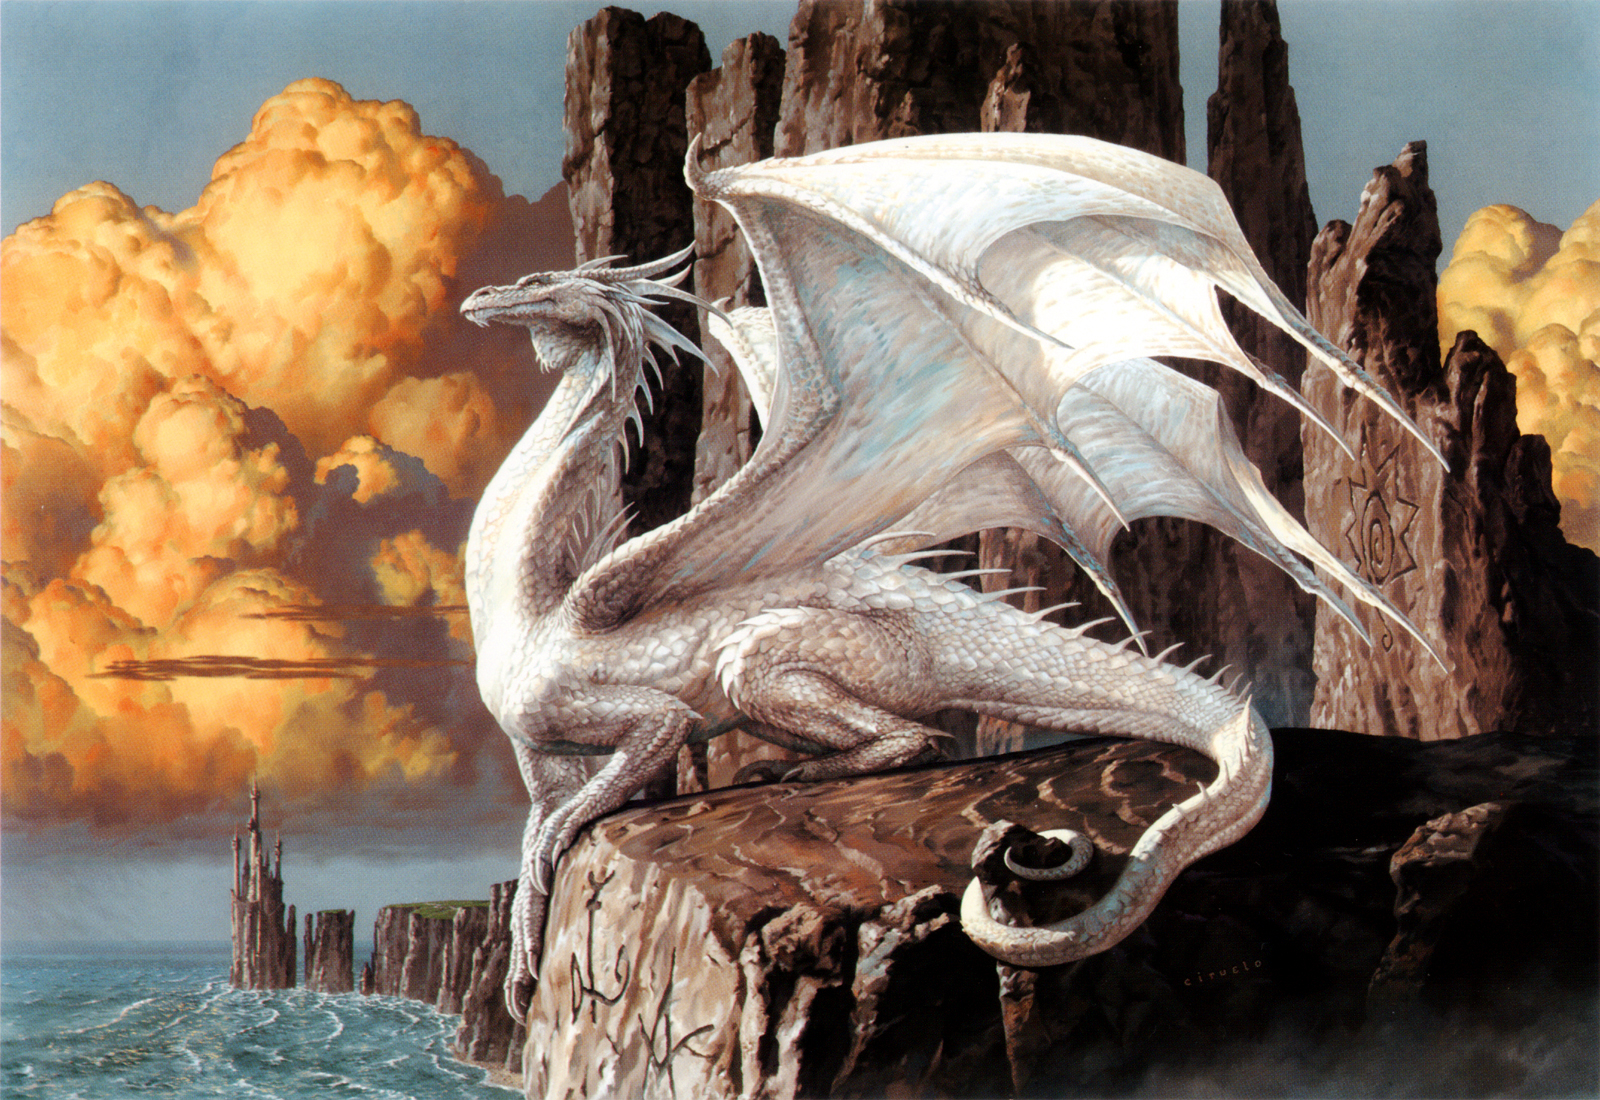 Free Download Magic The Gathering Art White Dragon Wallpaper Magic